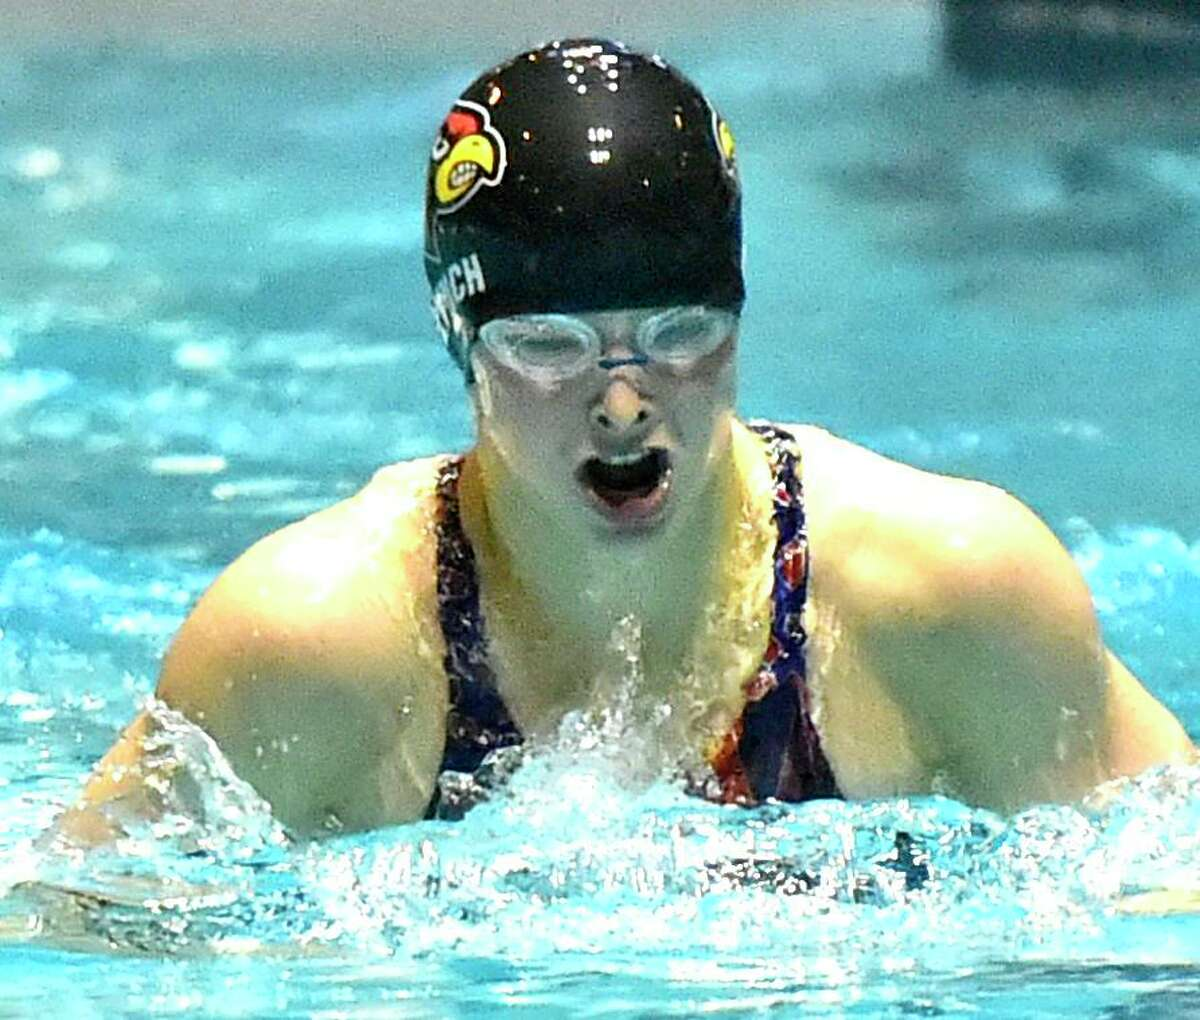 New Haven, Connecticut -Sunday, November 24, 2019: Meghan Lynch of Greenwich H.S. swims the breaststroke to a state record in the 200 Yard IM during the CIAC State Open Girls Swimming Championship Sunday at Yale University in New Haven.